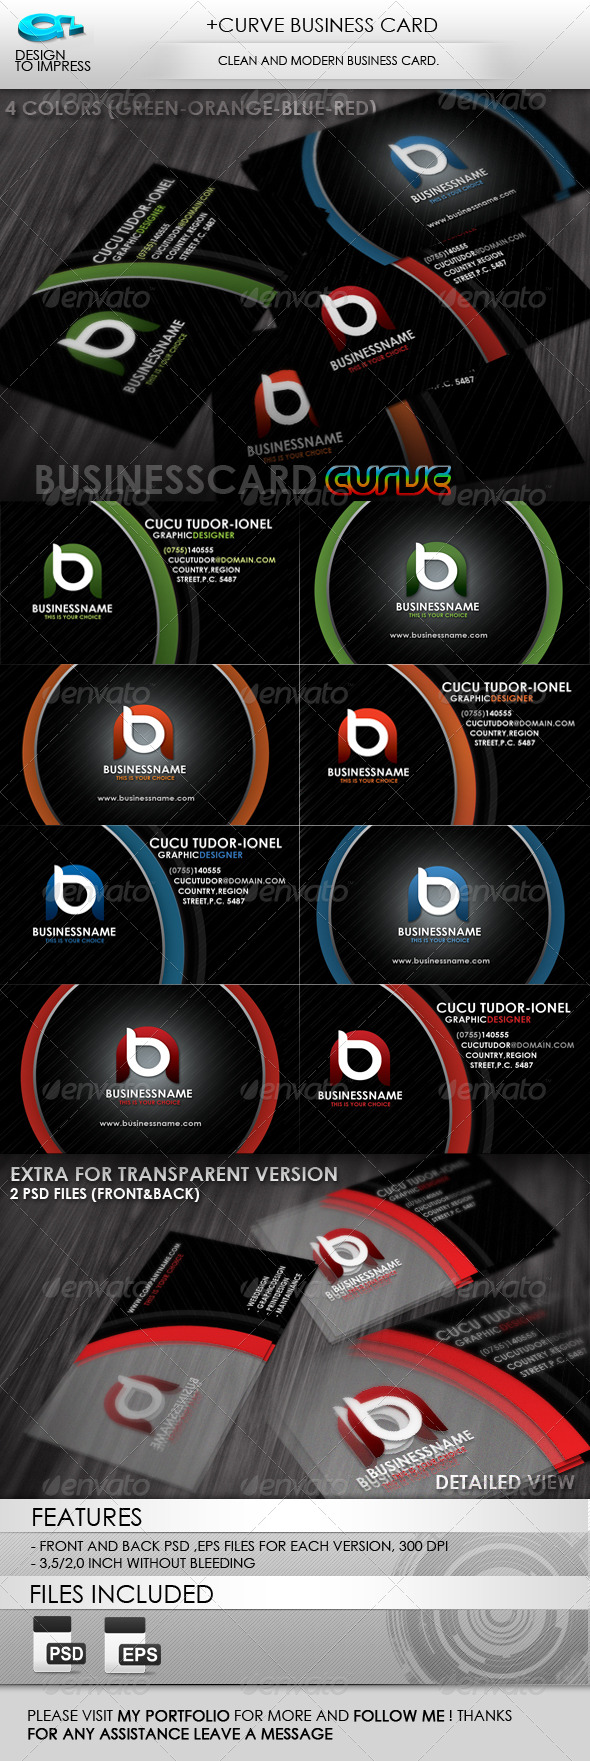 GraphicRiver &Curve Business Card 238556